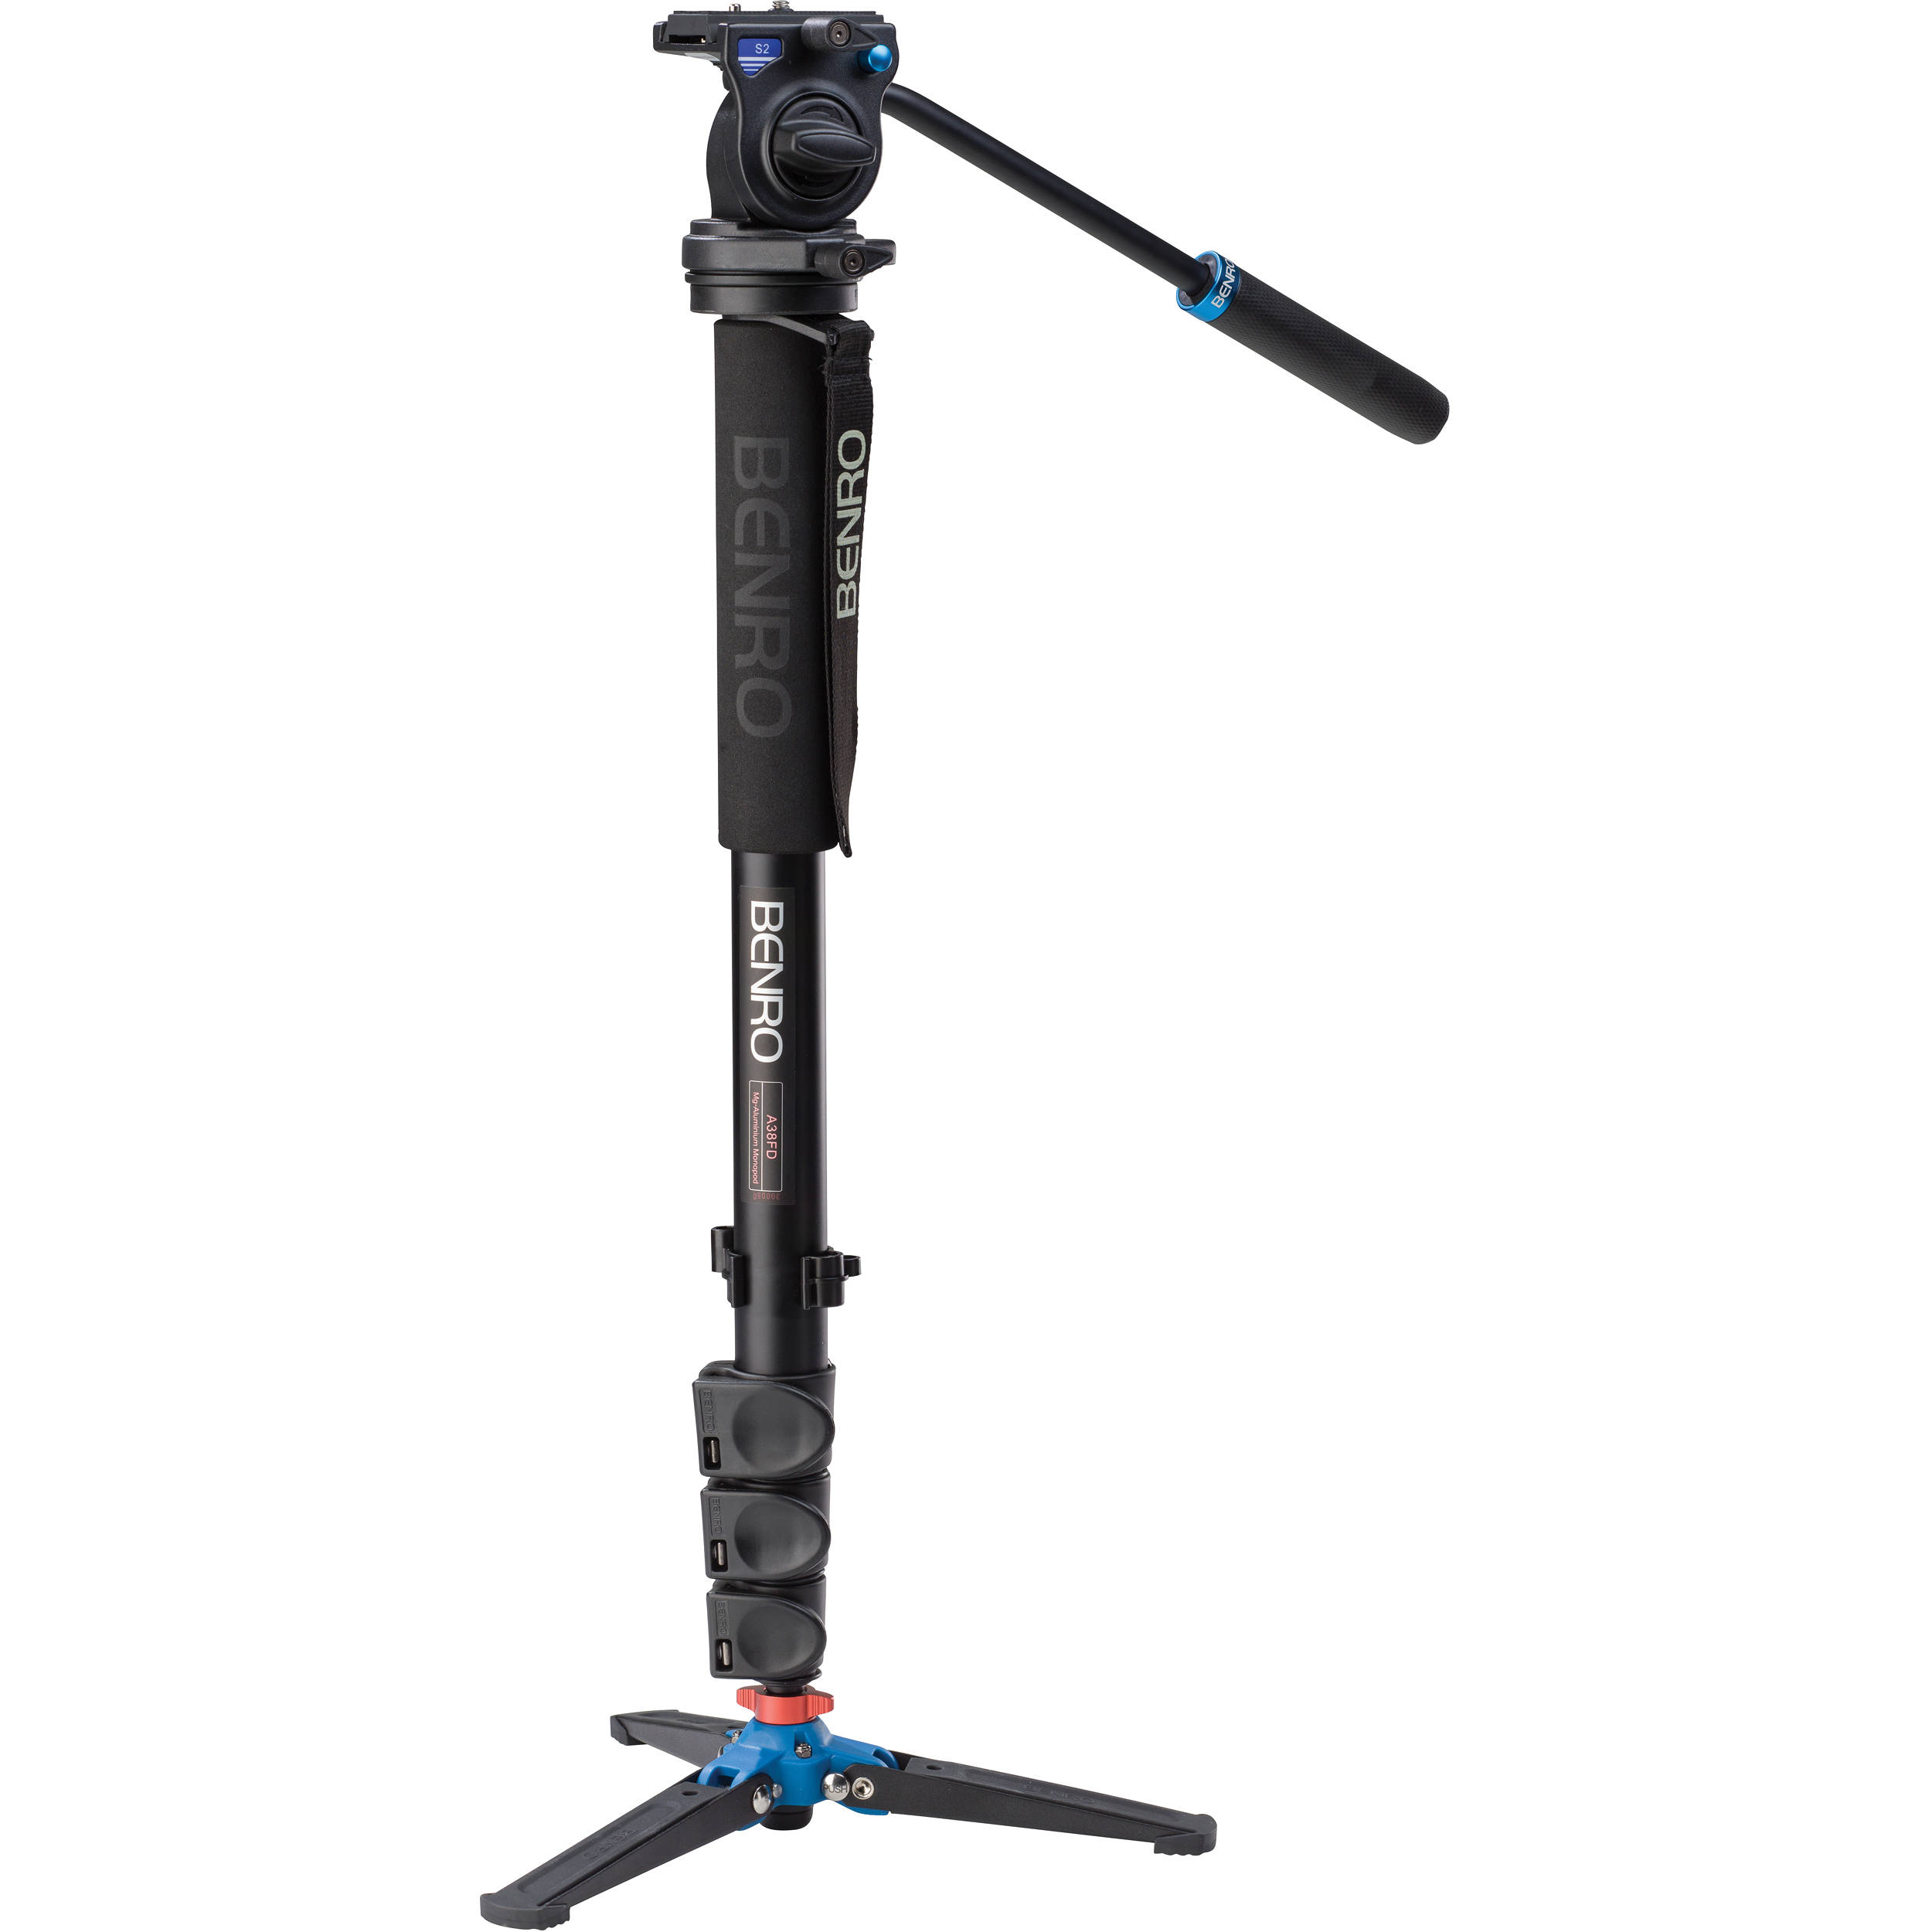 Benro A38FDS2 Series 3 Aluminum Monopod with 3-Leg A38FDS2 B&H